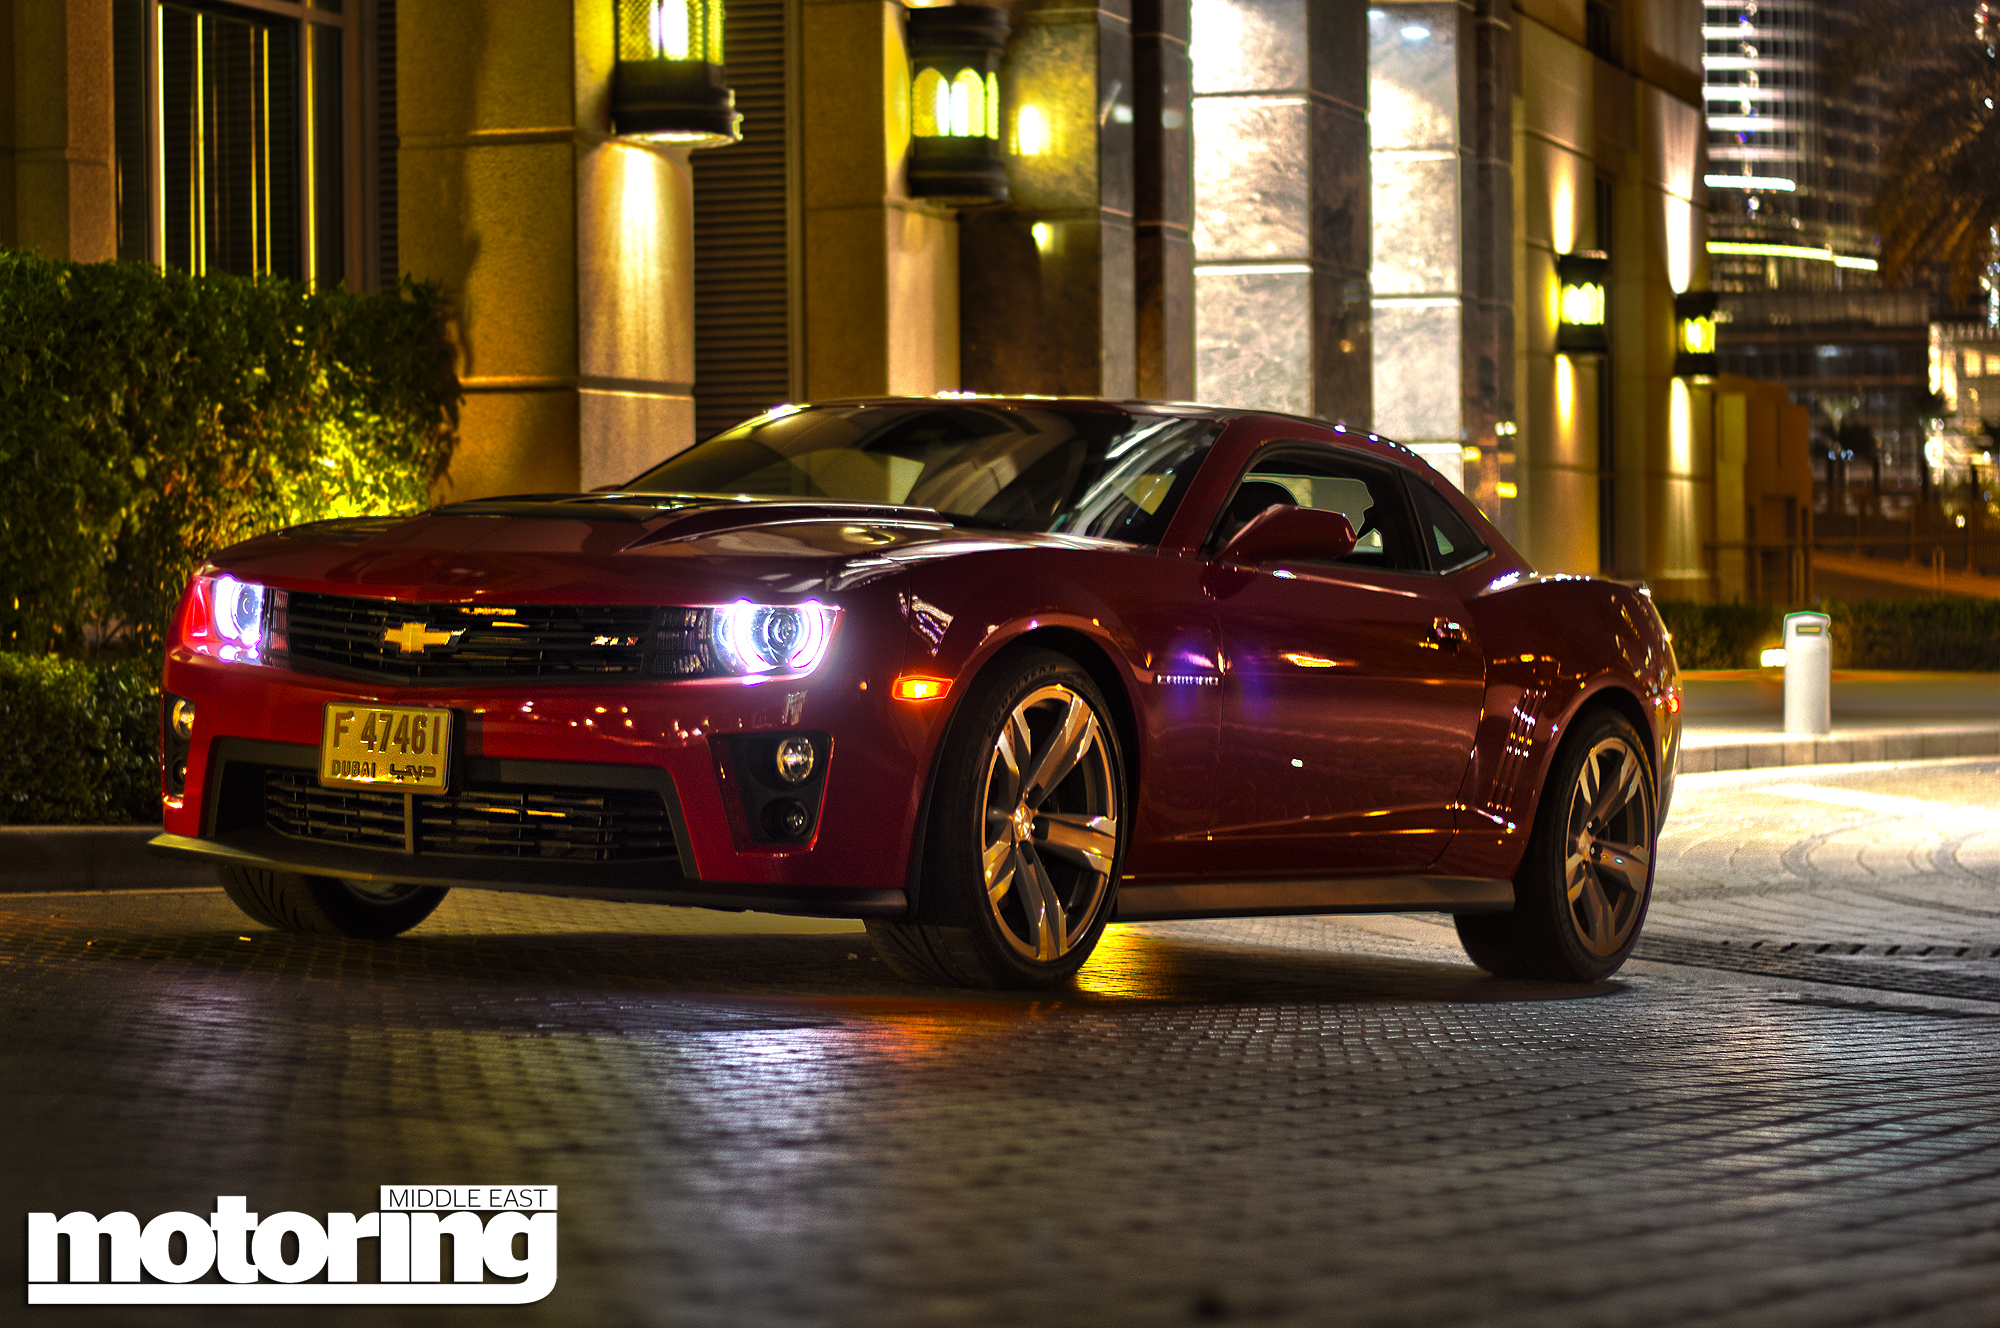 2012 Chevrolet Camaro Zl1 Review Motoring Middle East